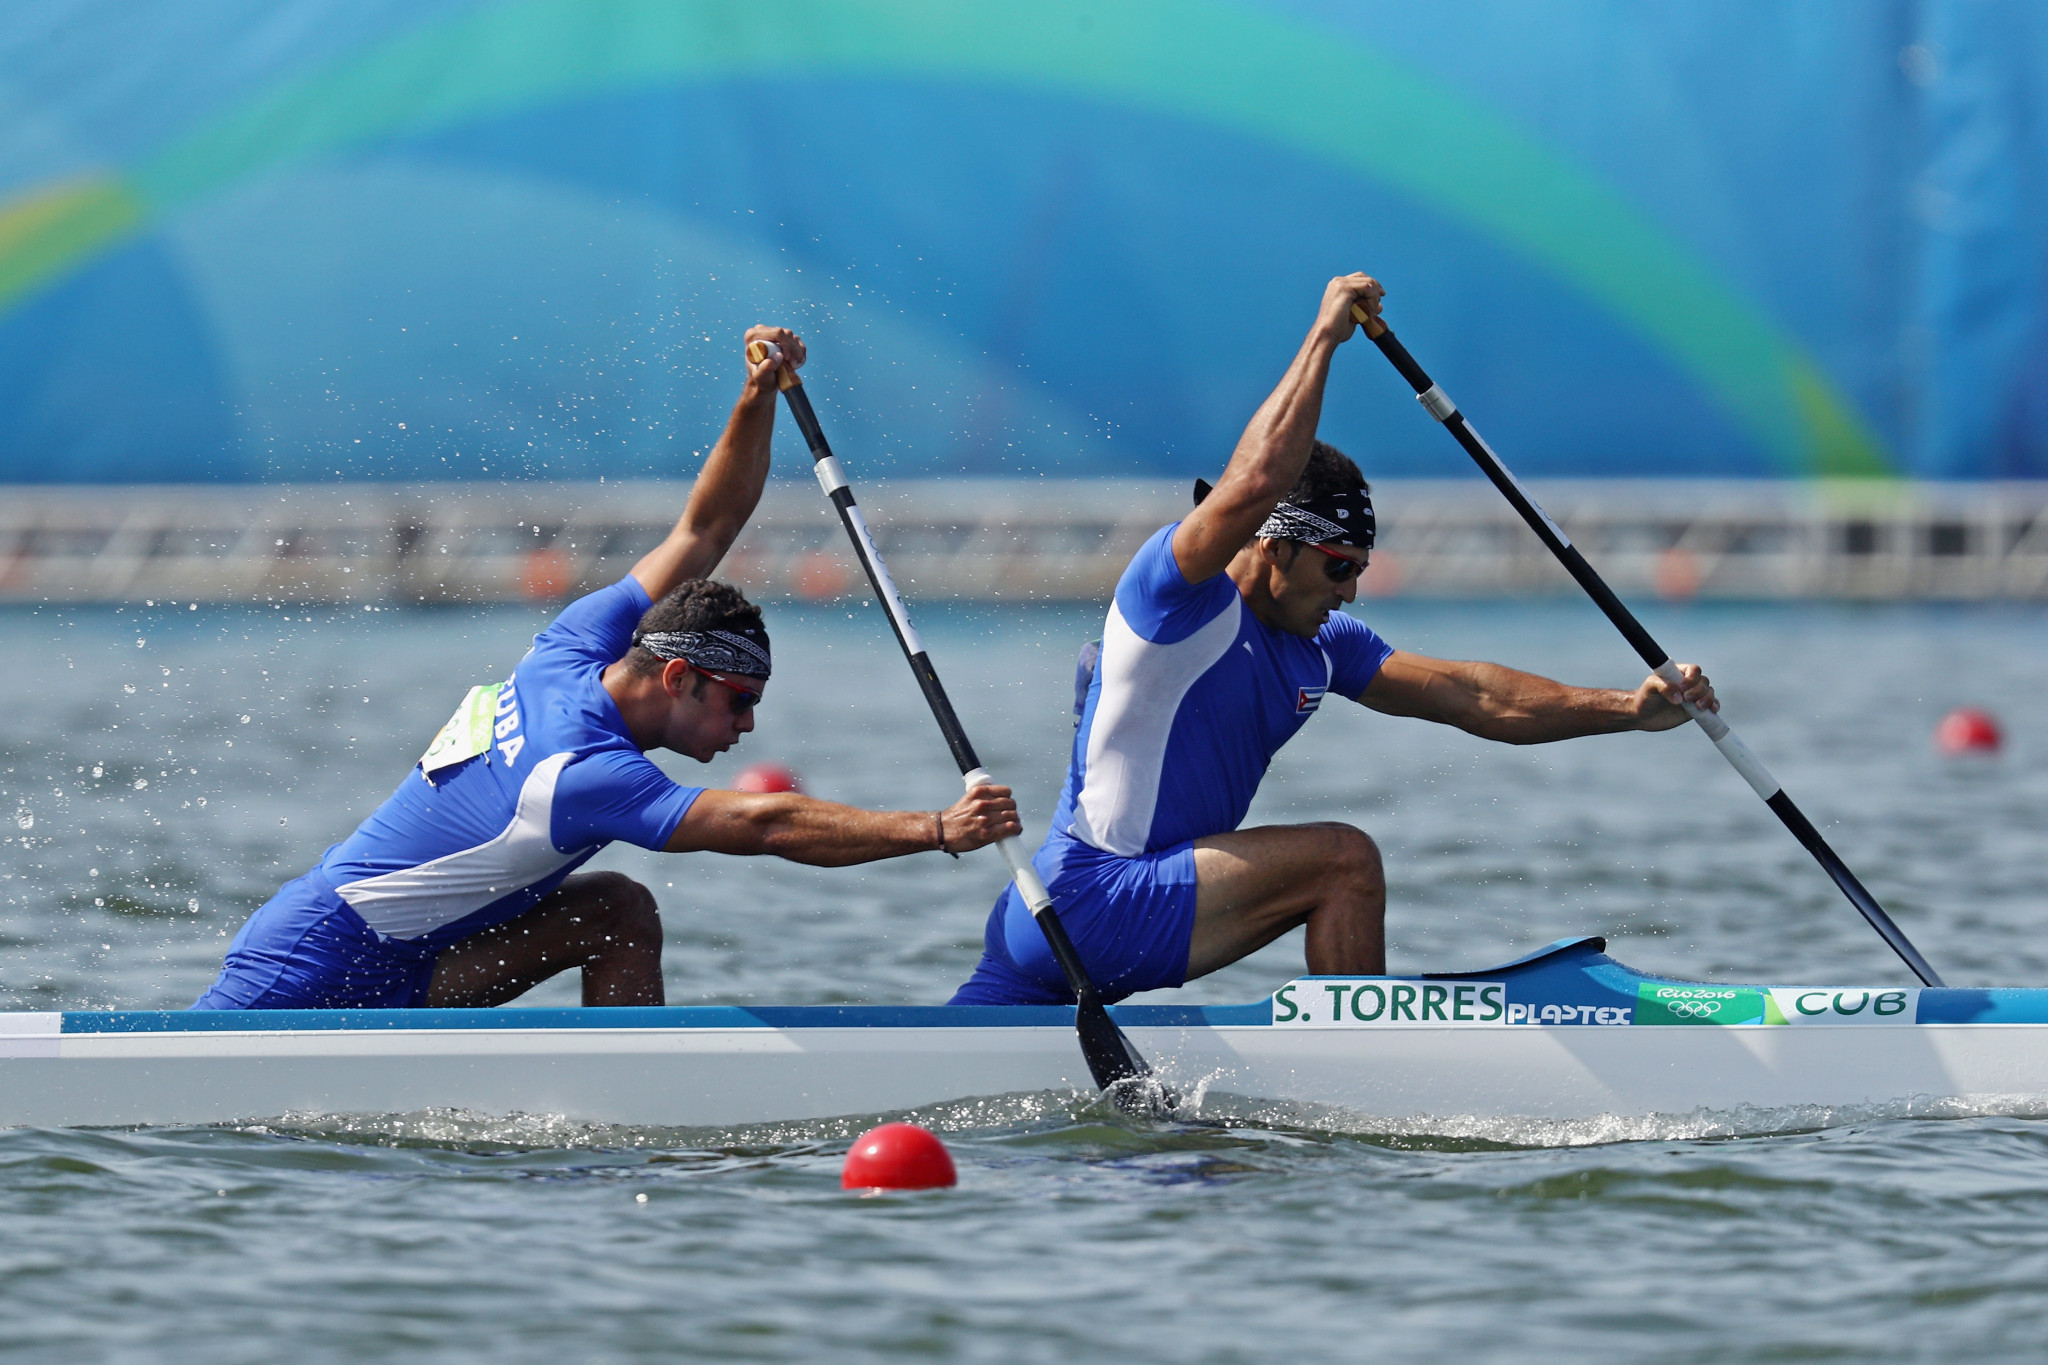 Serguey Torres and Fernando Dayan Jorge secured one of Cuba's five gold medals in Barnaul ©Getty Images